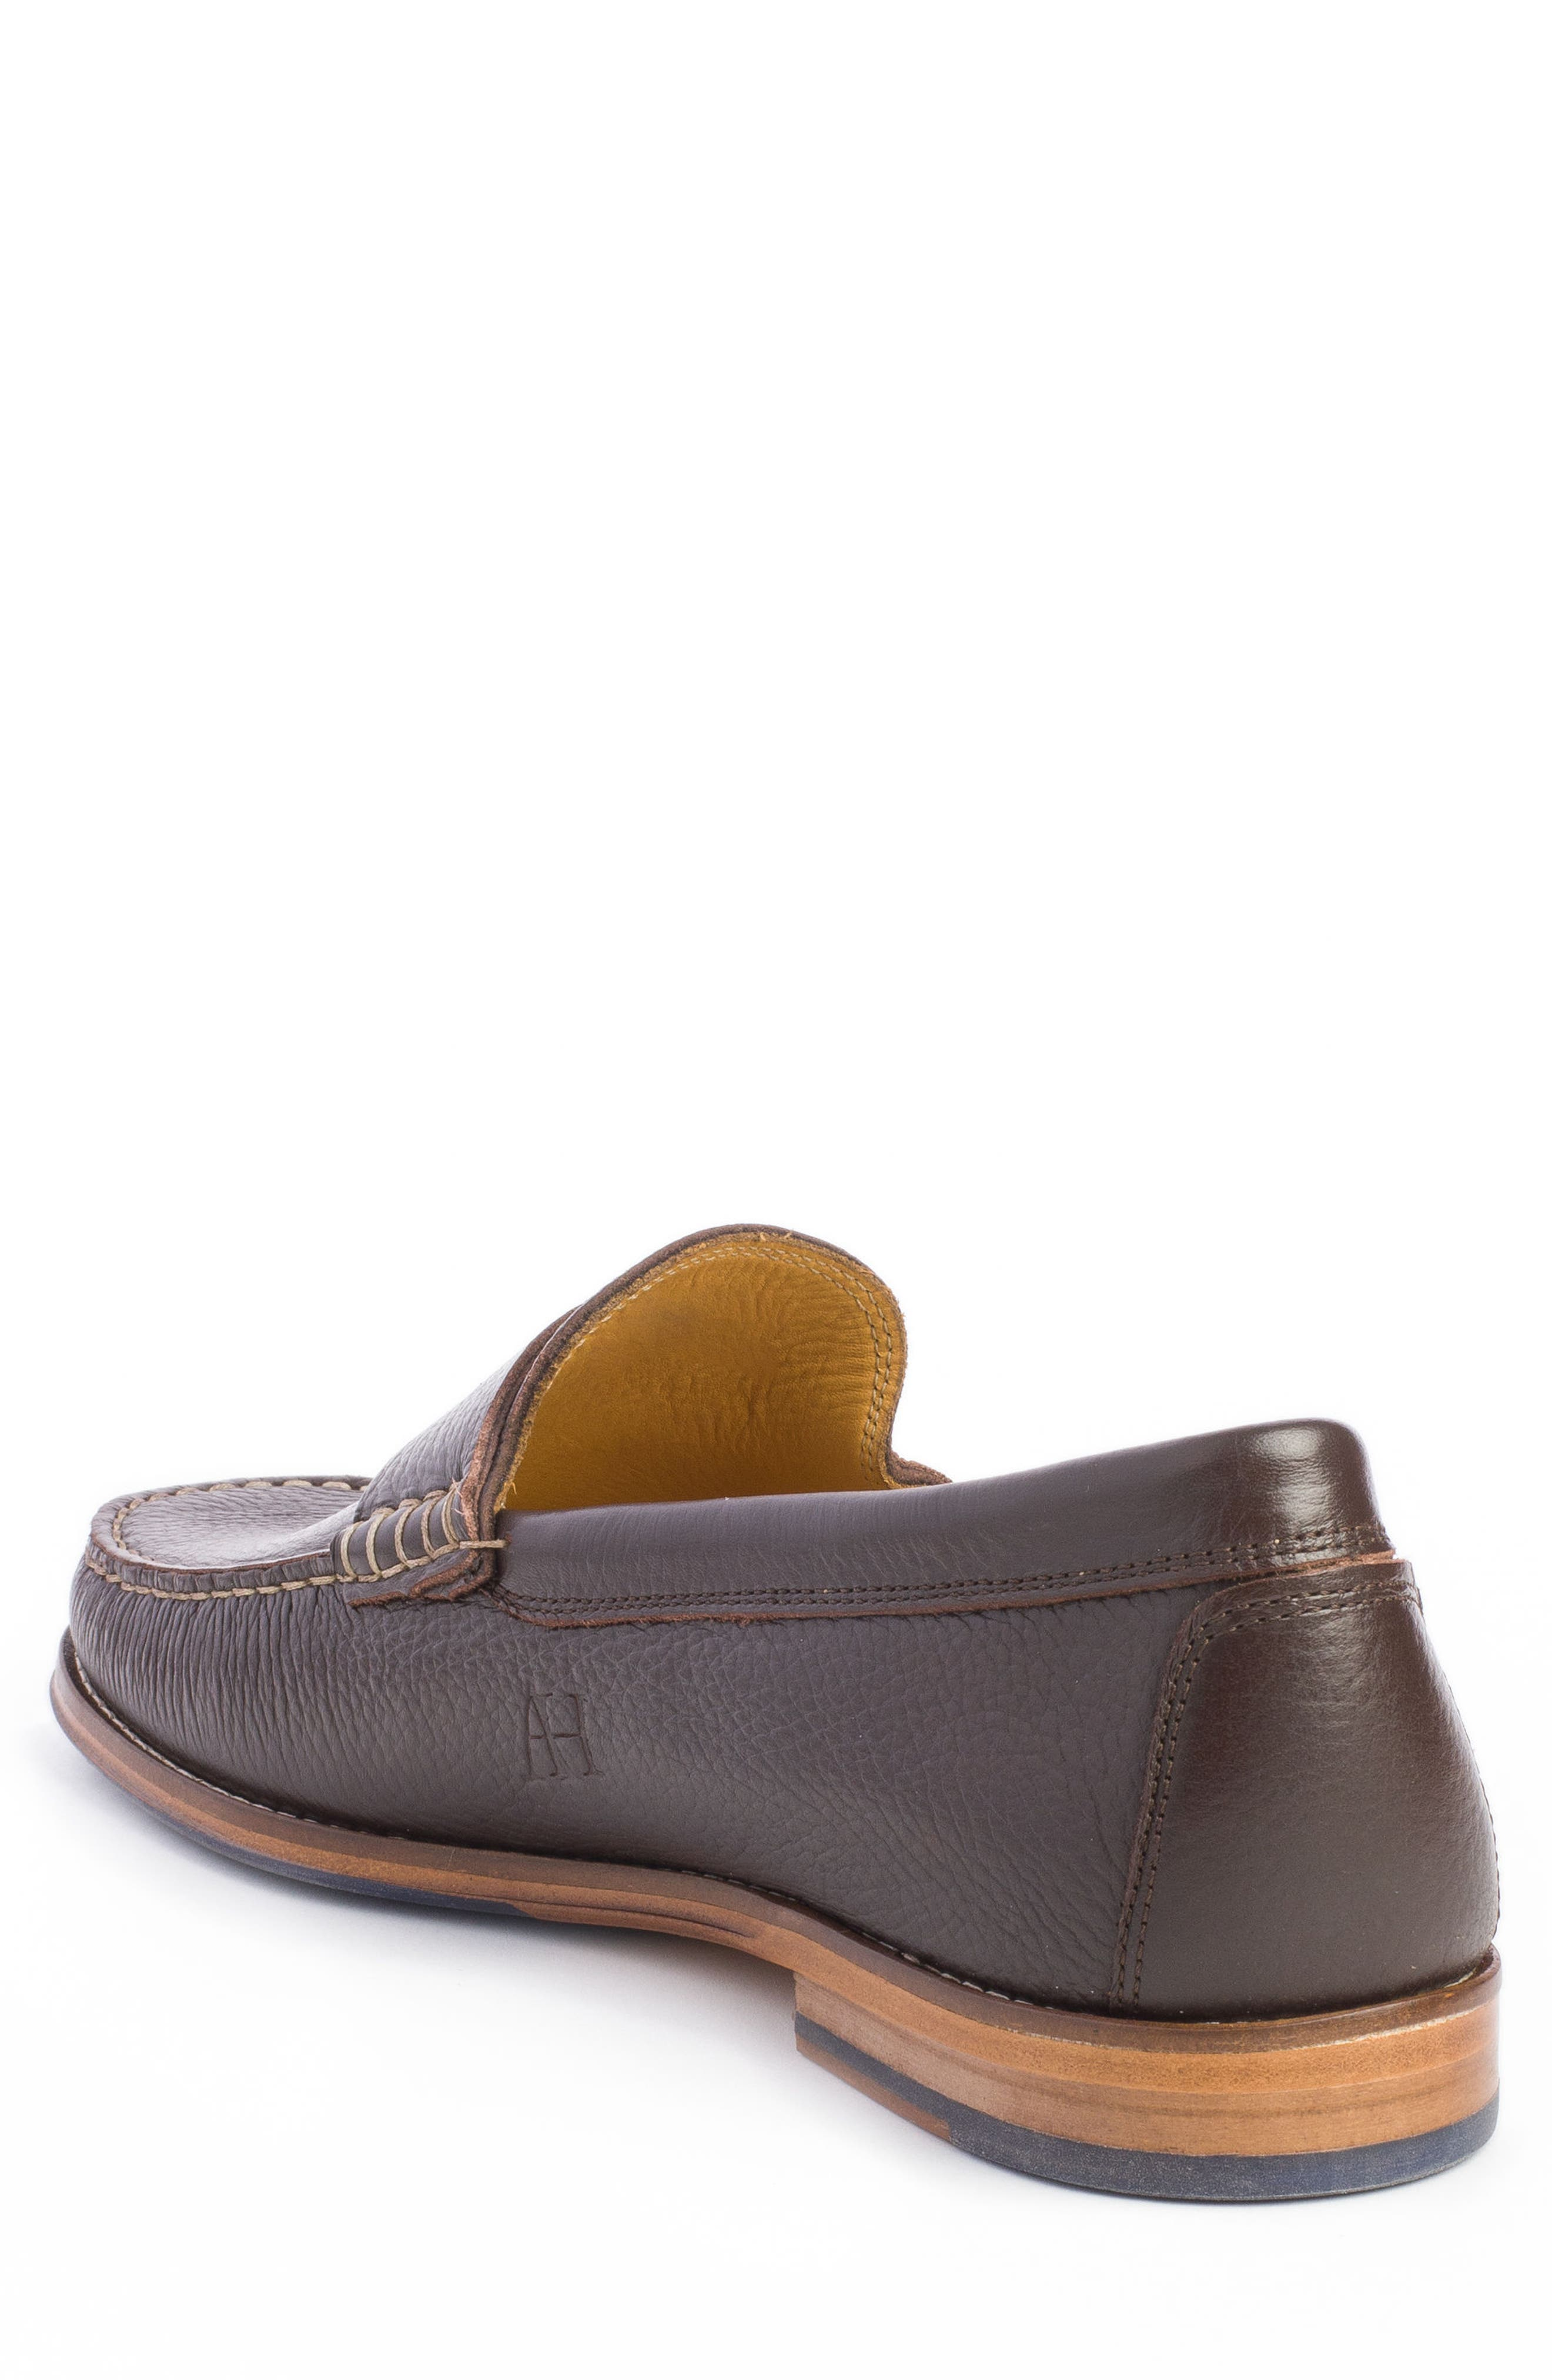 Ripleys Penny Loafer,                             Alternate thumbnail 2, color,                             BROWN